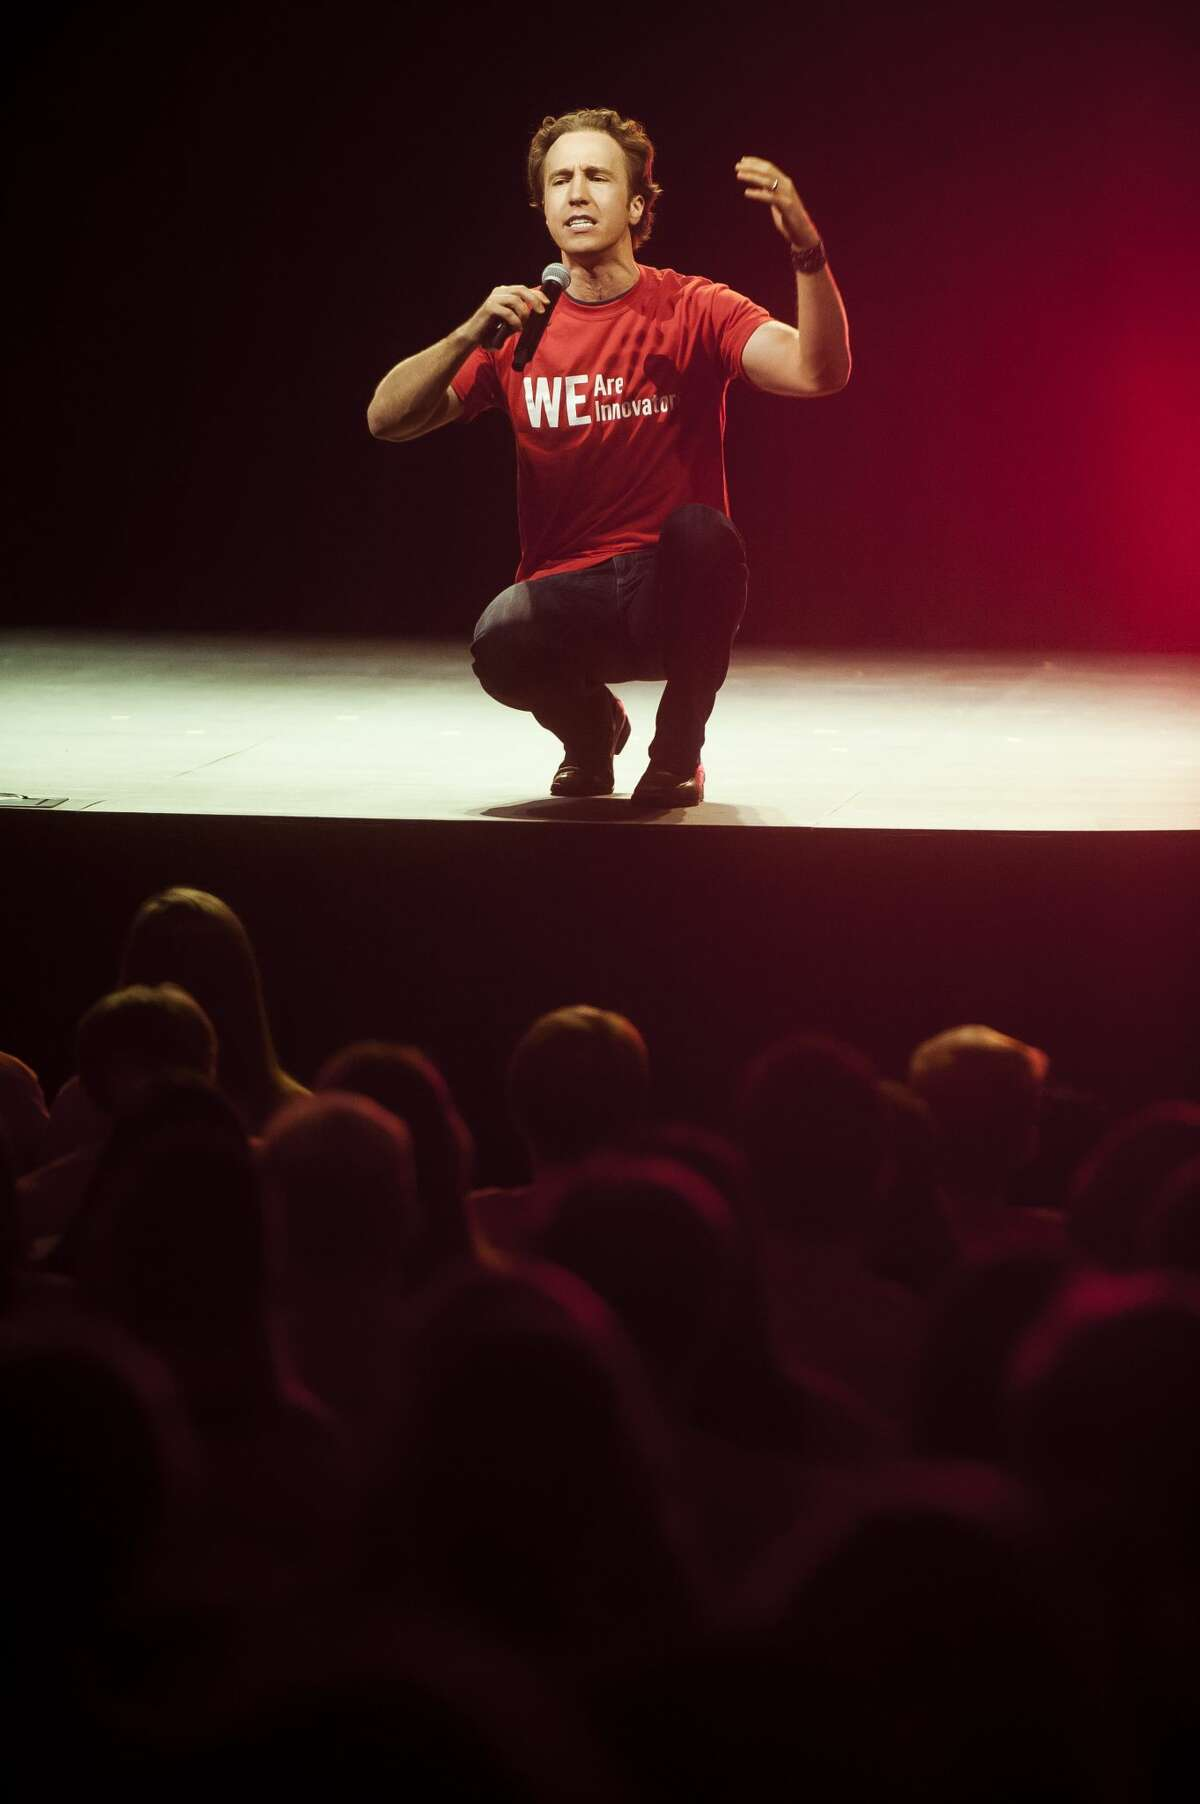 WE cofounder Craig Kielburger speaks to about 400 H. H. Dow and Midland high school students in Central Park Elementary auditorium during the